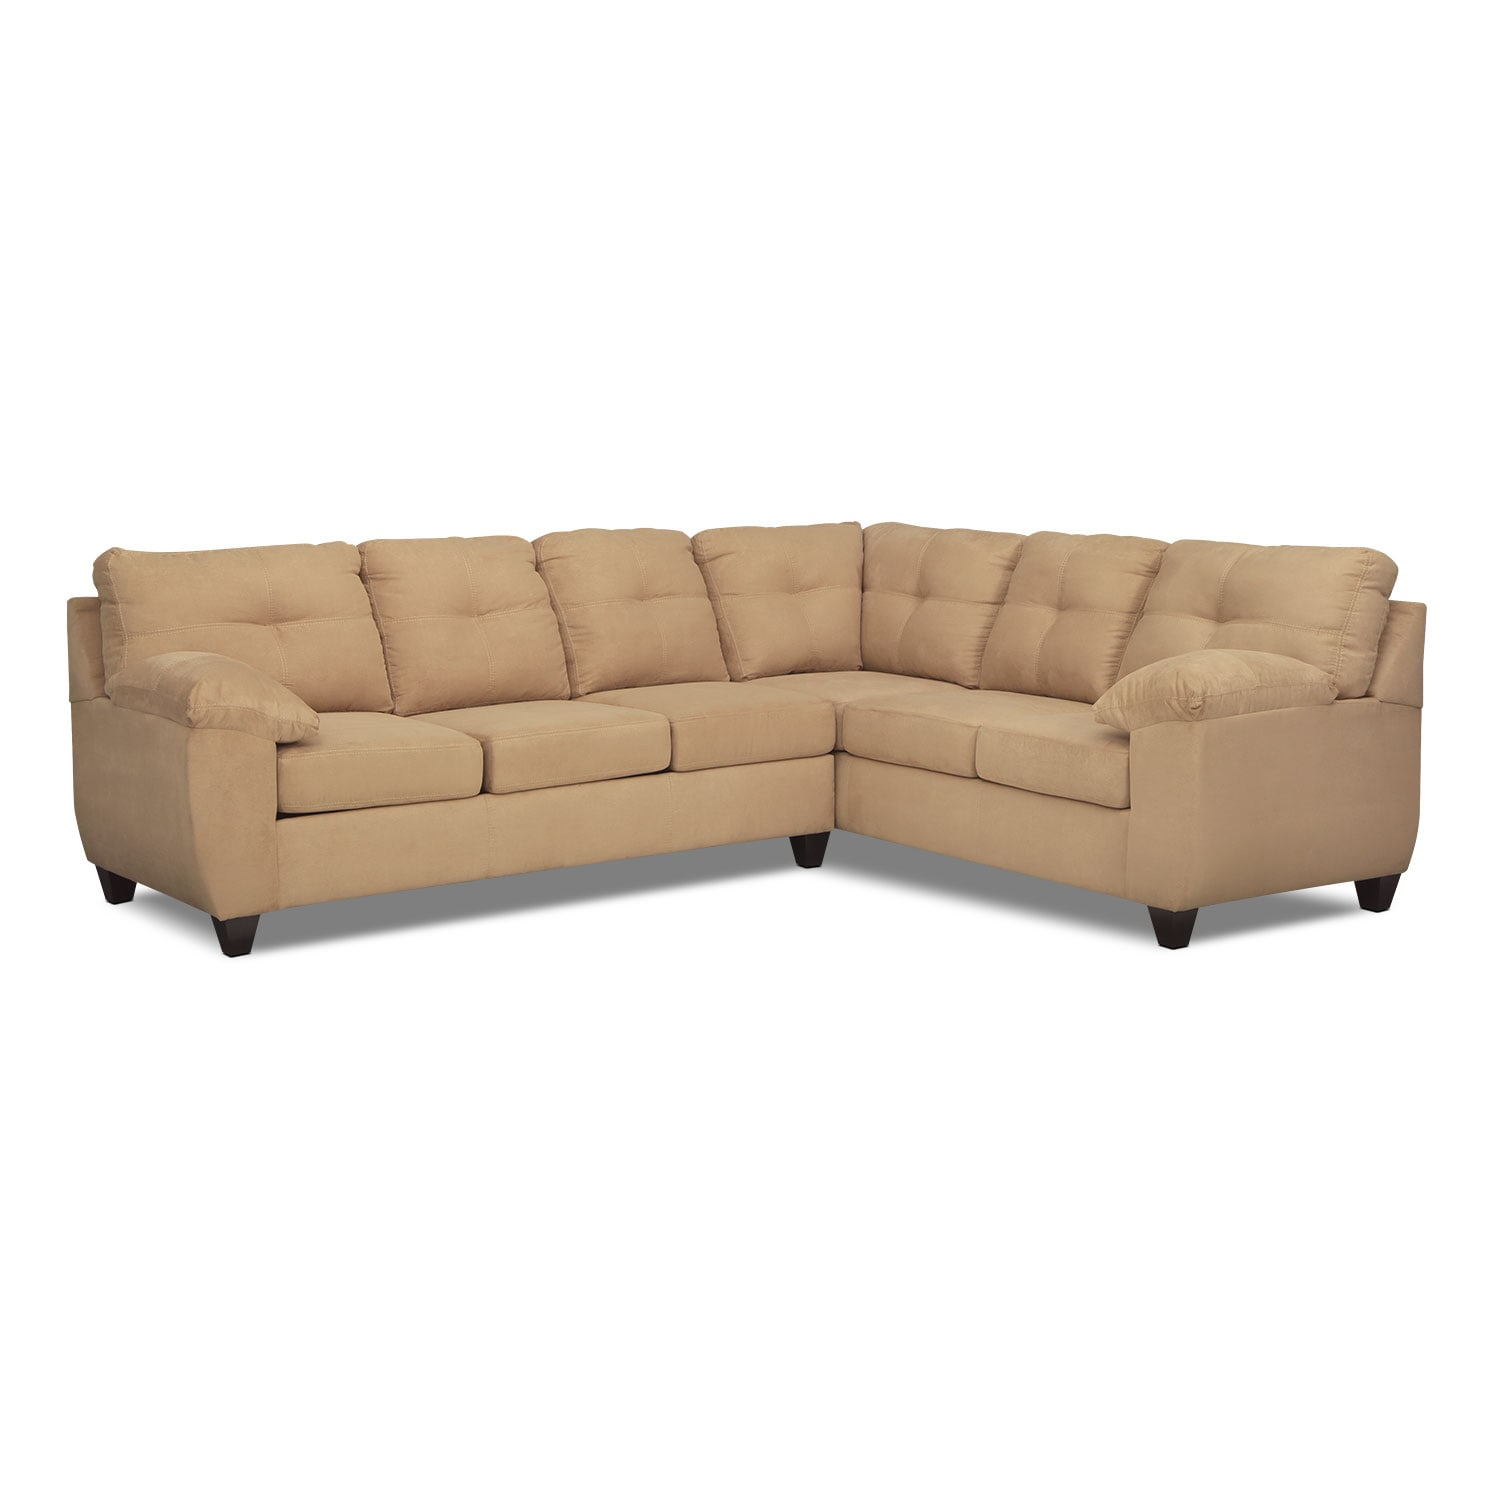 rialto sofa bed dundee v utd sofascore 2 piece sectional with right facing corner